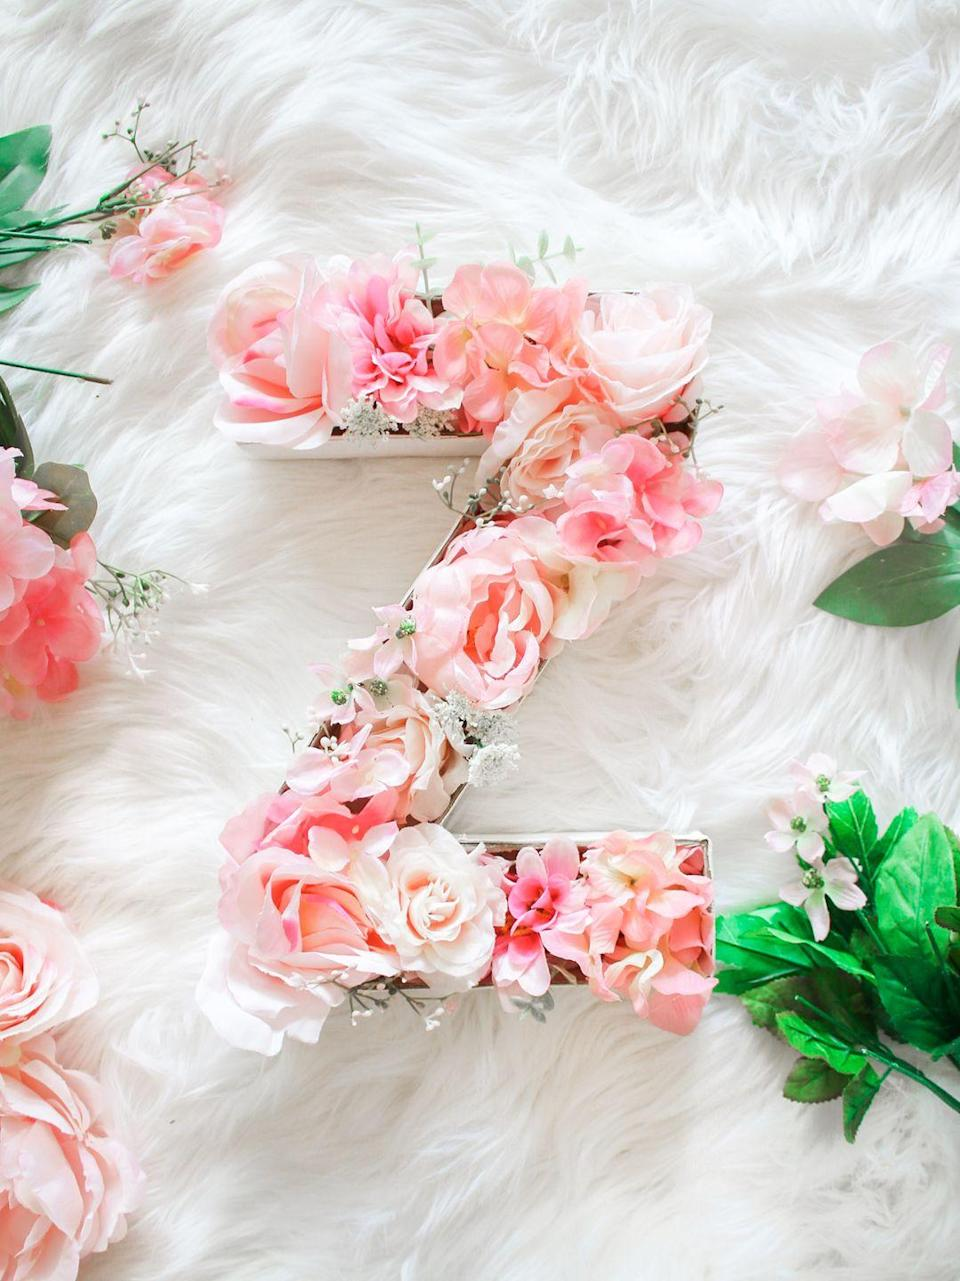 """<p>Whether she uses this floral beauty to dress up her door, wall, or shelf, it'll make her smile every time she looks at it. Trust. </p><p><em><a href=""""https://thediaryofadebutante.com/diy-monogram-door-hanger-flowers/"""" rel=""""nofollow noopener"""" target=""""_blank"""" data-ylk=""""slk:Get the tutorial at Diary of a Debutante »"""" class=""""link rapid-noclick-resp"""">Get the tutorial at Diary of a Debutante » </a></em> </p>"""